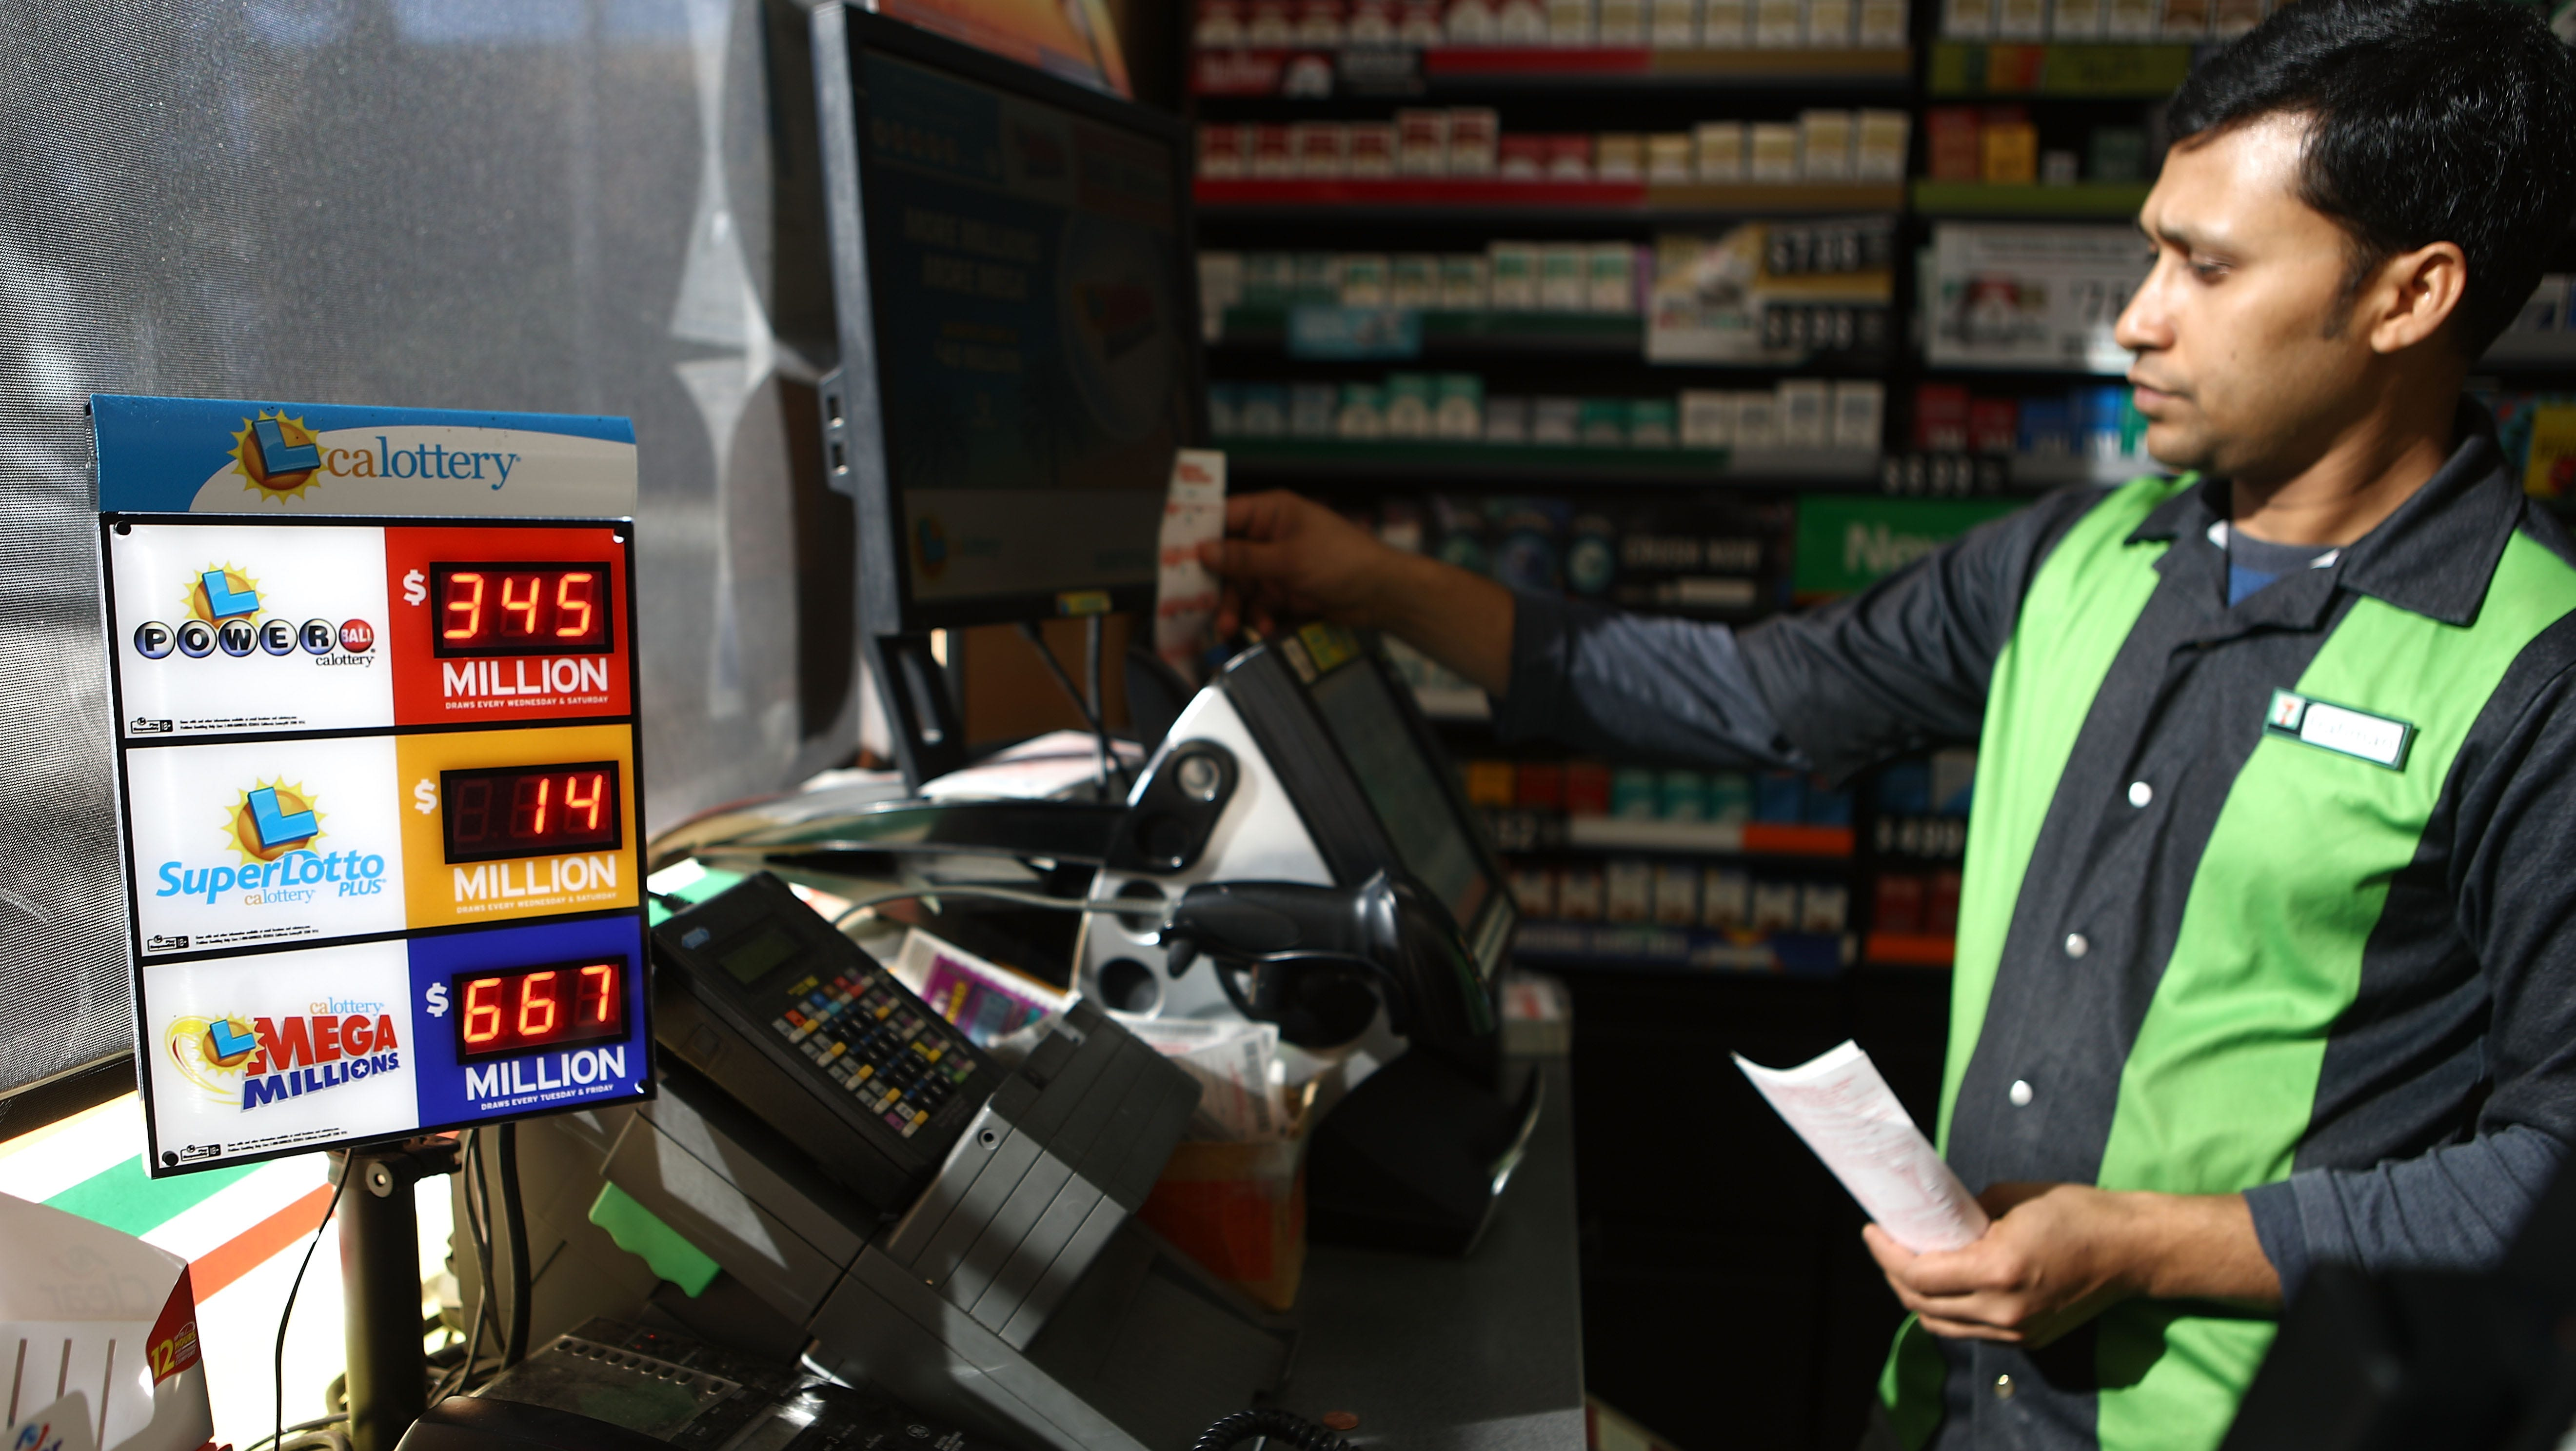 A worker processes lottery tickets on October 16, 2018 in Los Angeles, California. Friday's Mega Millions jackpot jumps to $868 million while Wednesday night's Powerball jackpot is at $345 million.